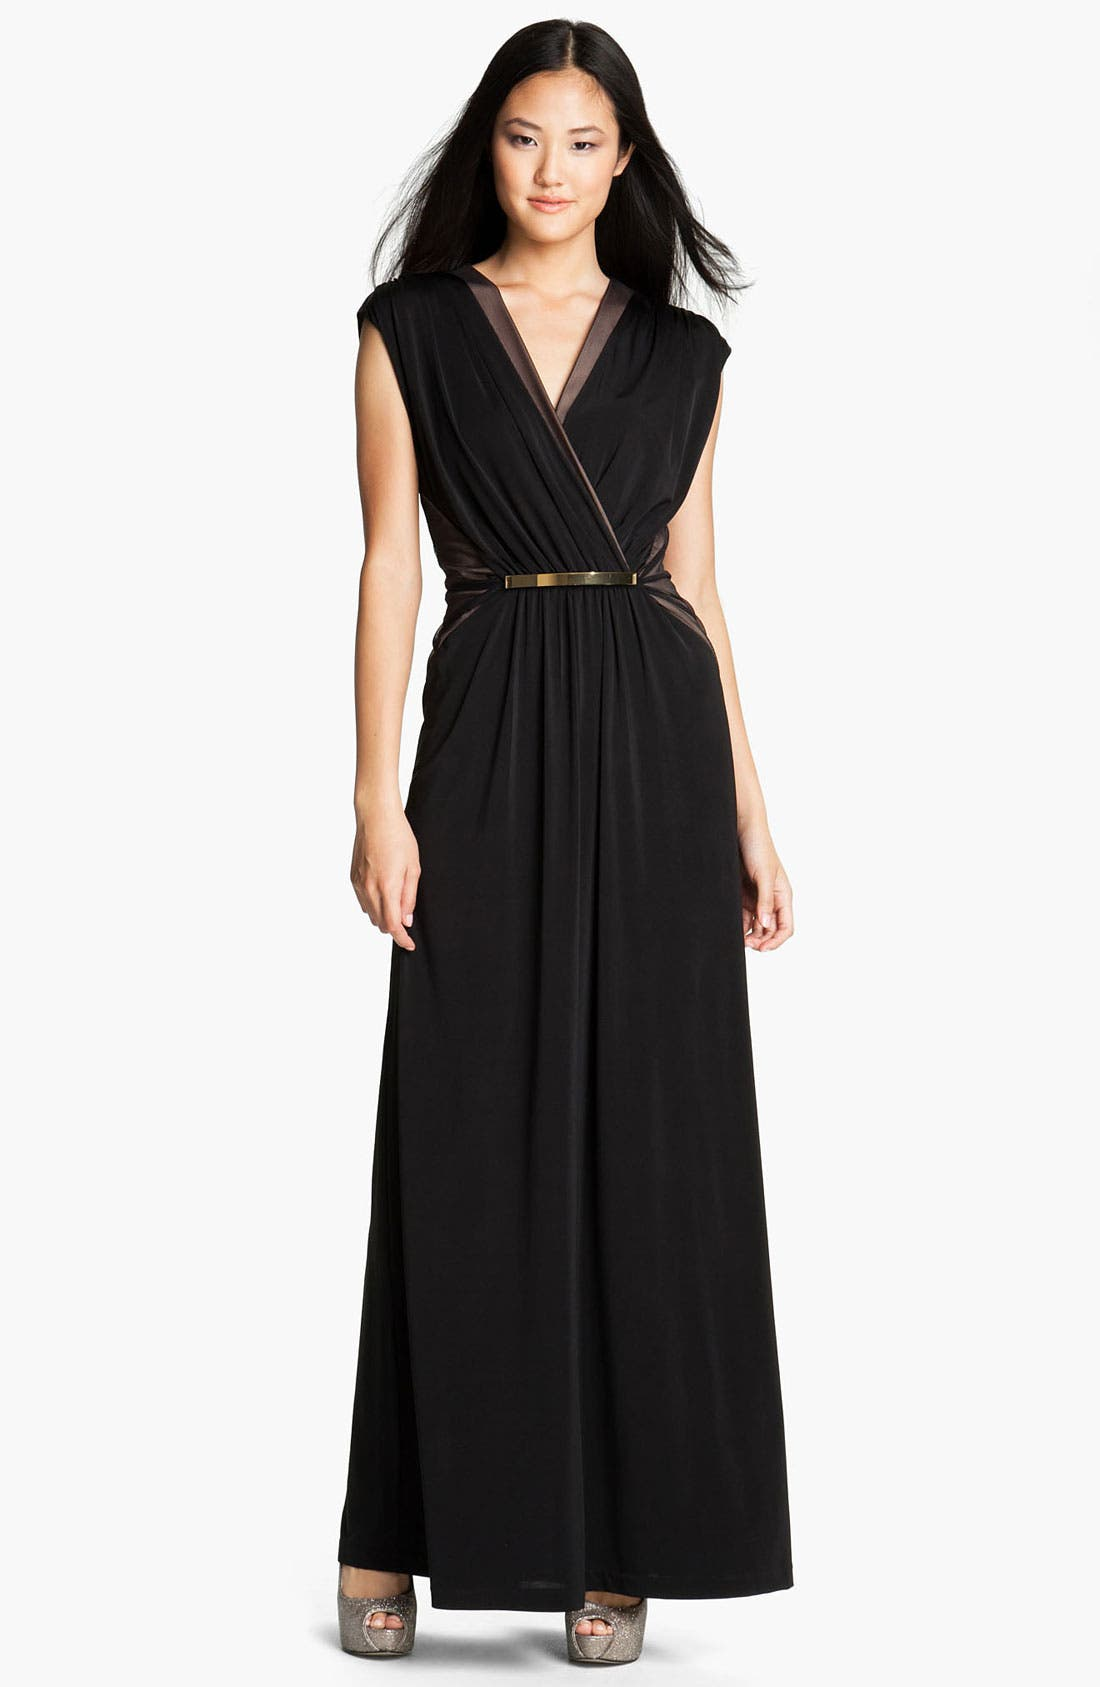 Main Image - Max & Cleo 'Chloe' Jersey & Mesh Gown